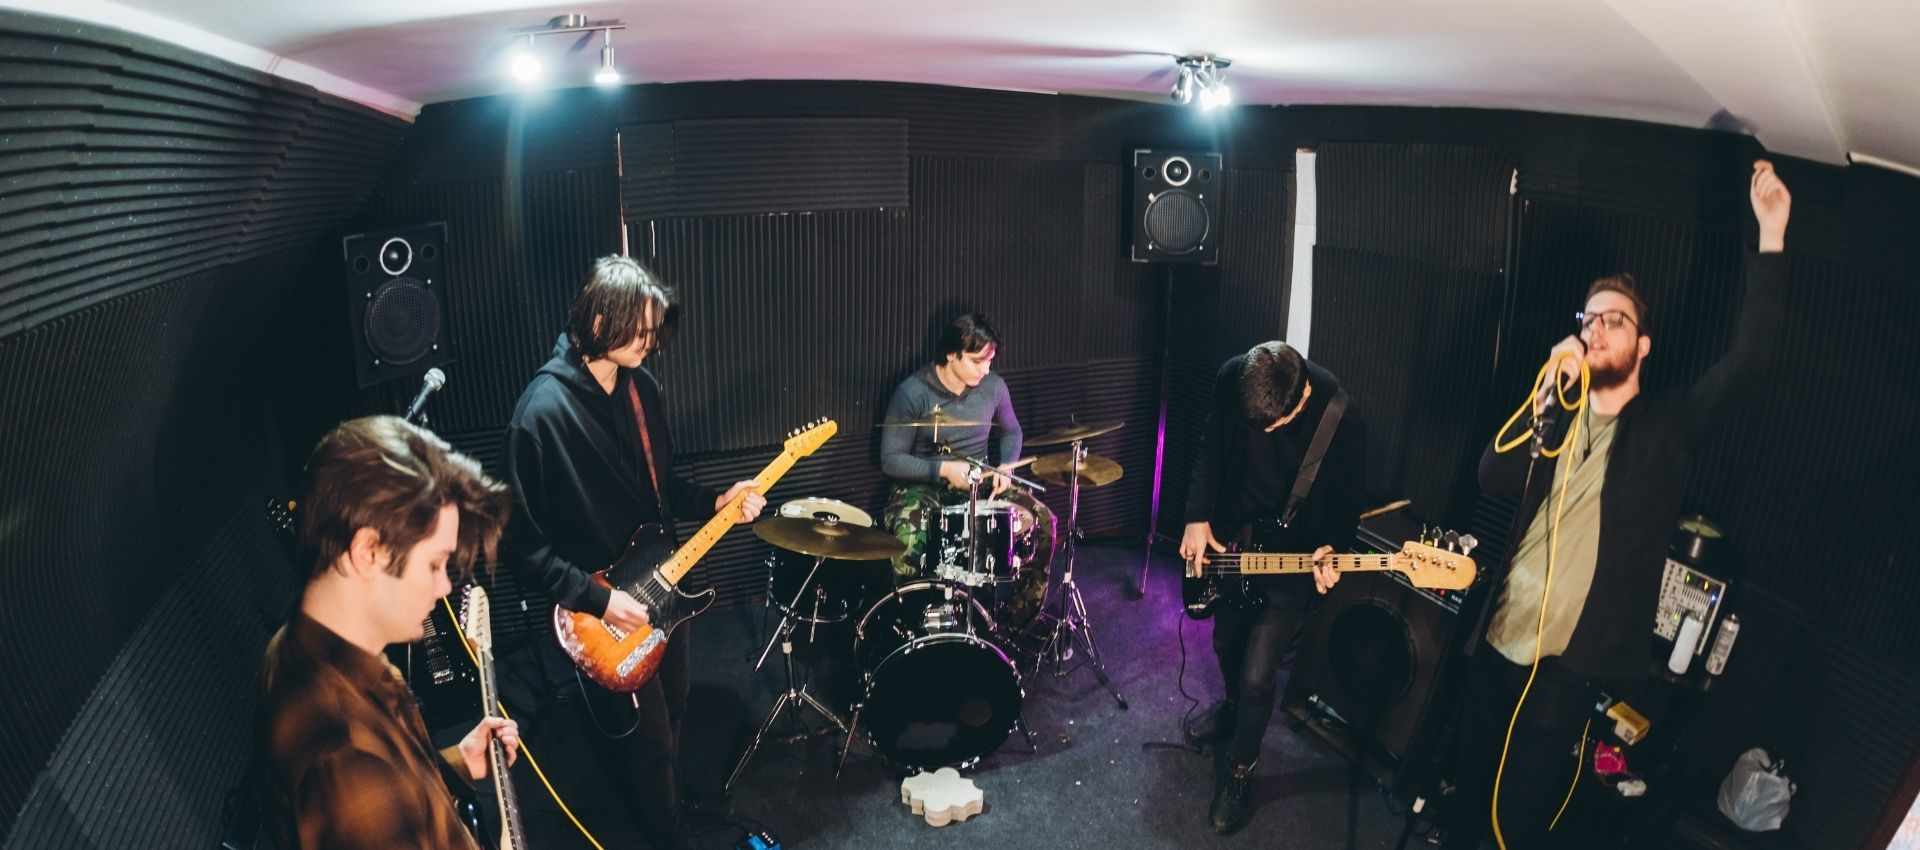 LL Blog 8 Tips For Joining A Band